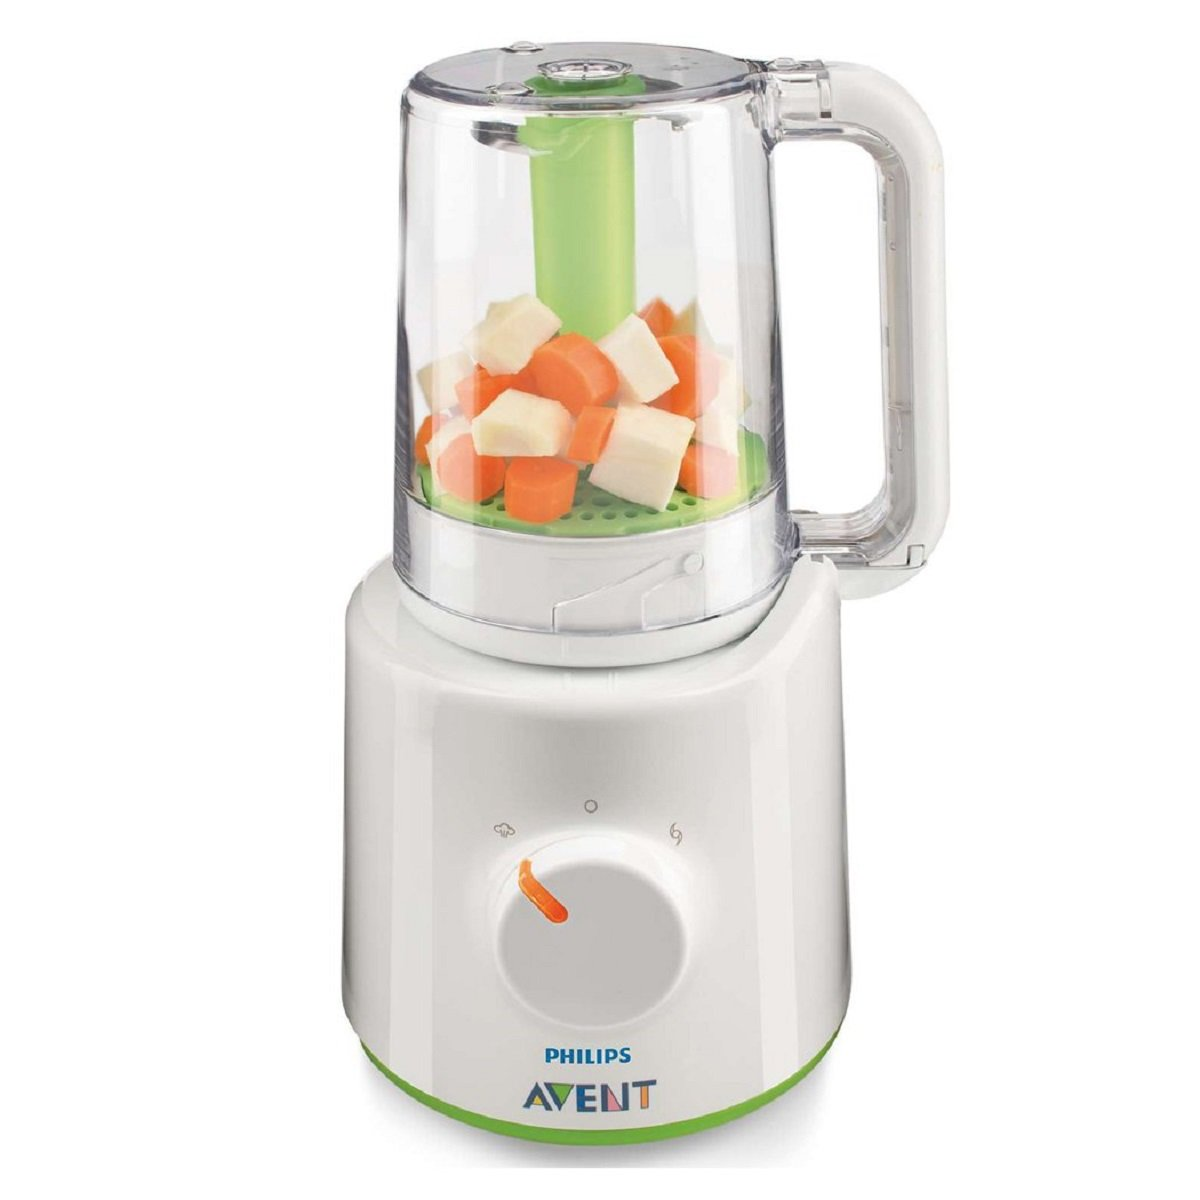 Amazon Com Philips Avent Scf870 21 Combined Baby Food Steamer And Blender 220v Only Baby Food Mills Baby